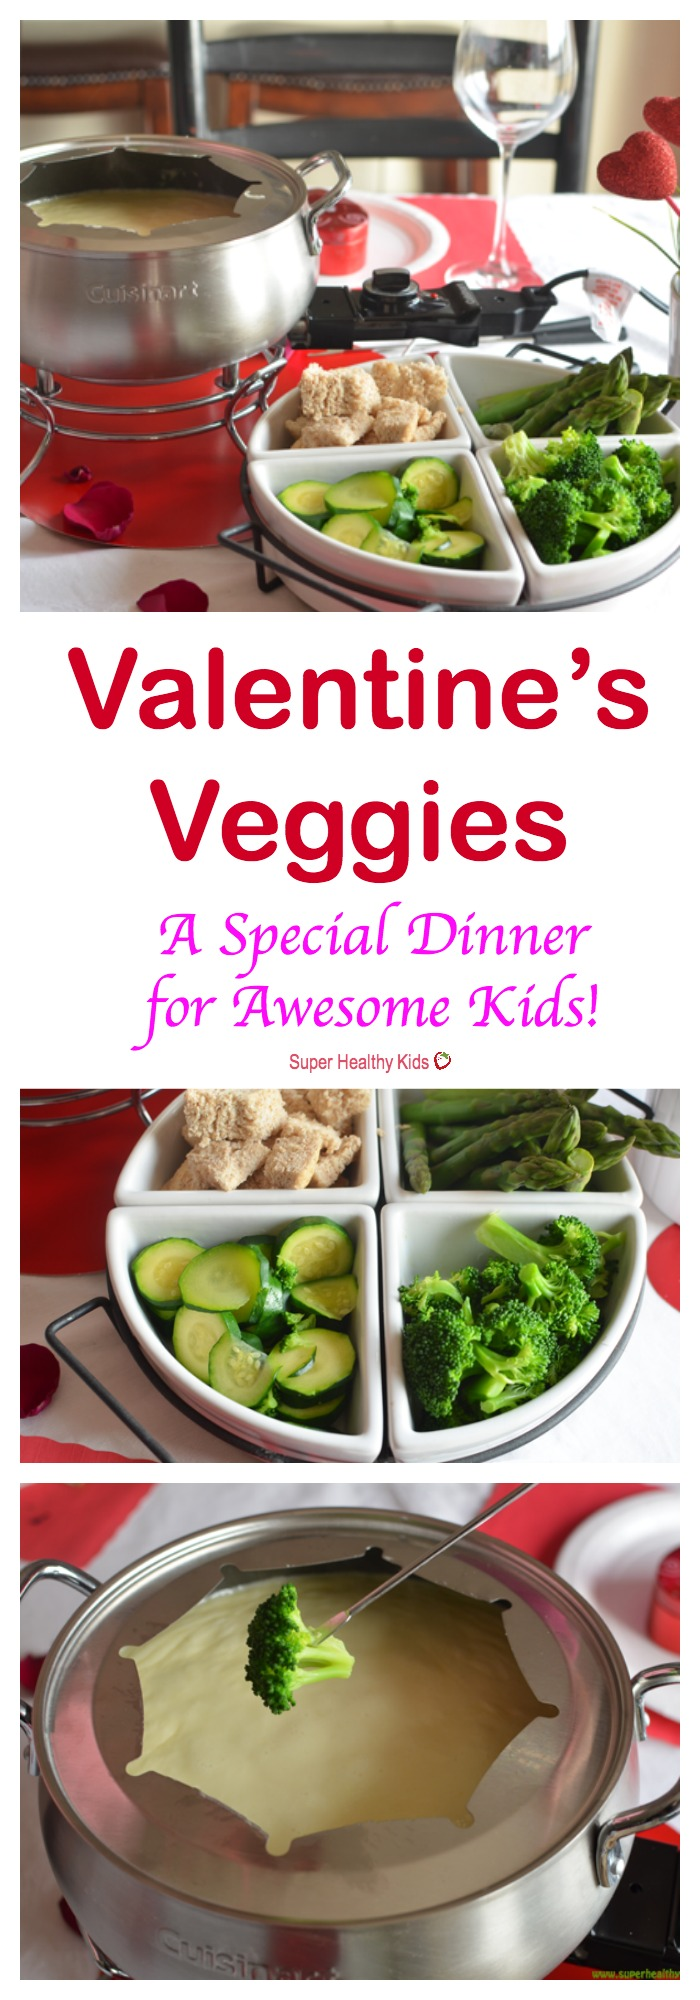 Valentine's Veggies  Special Dinner For Awesome Kids